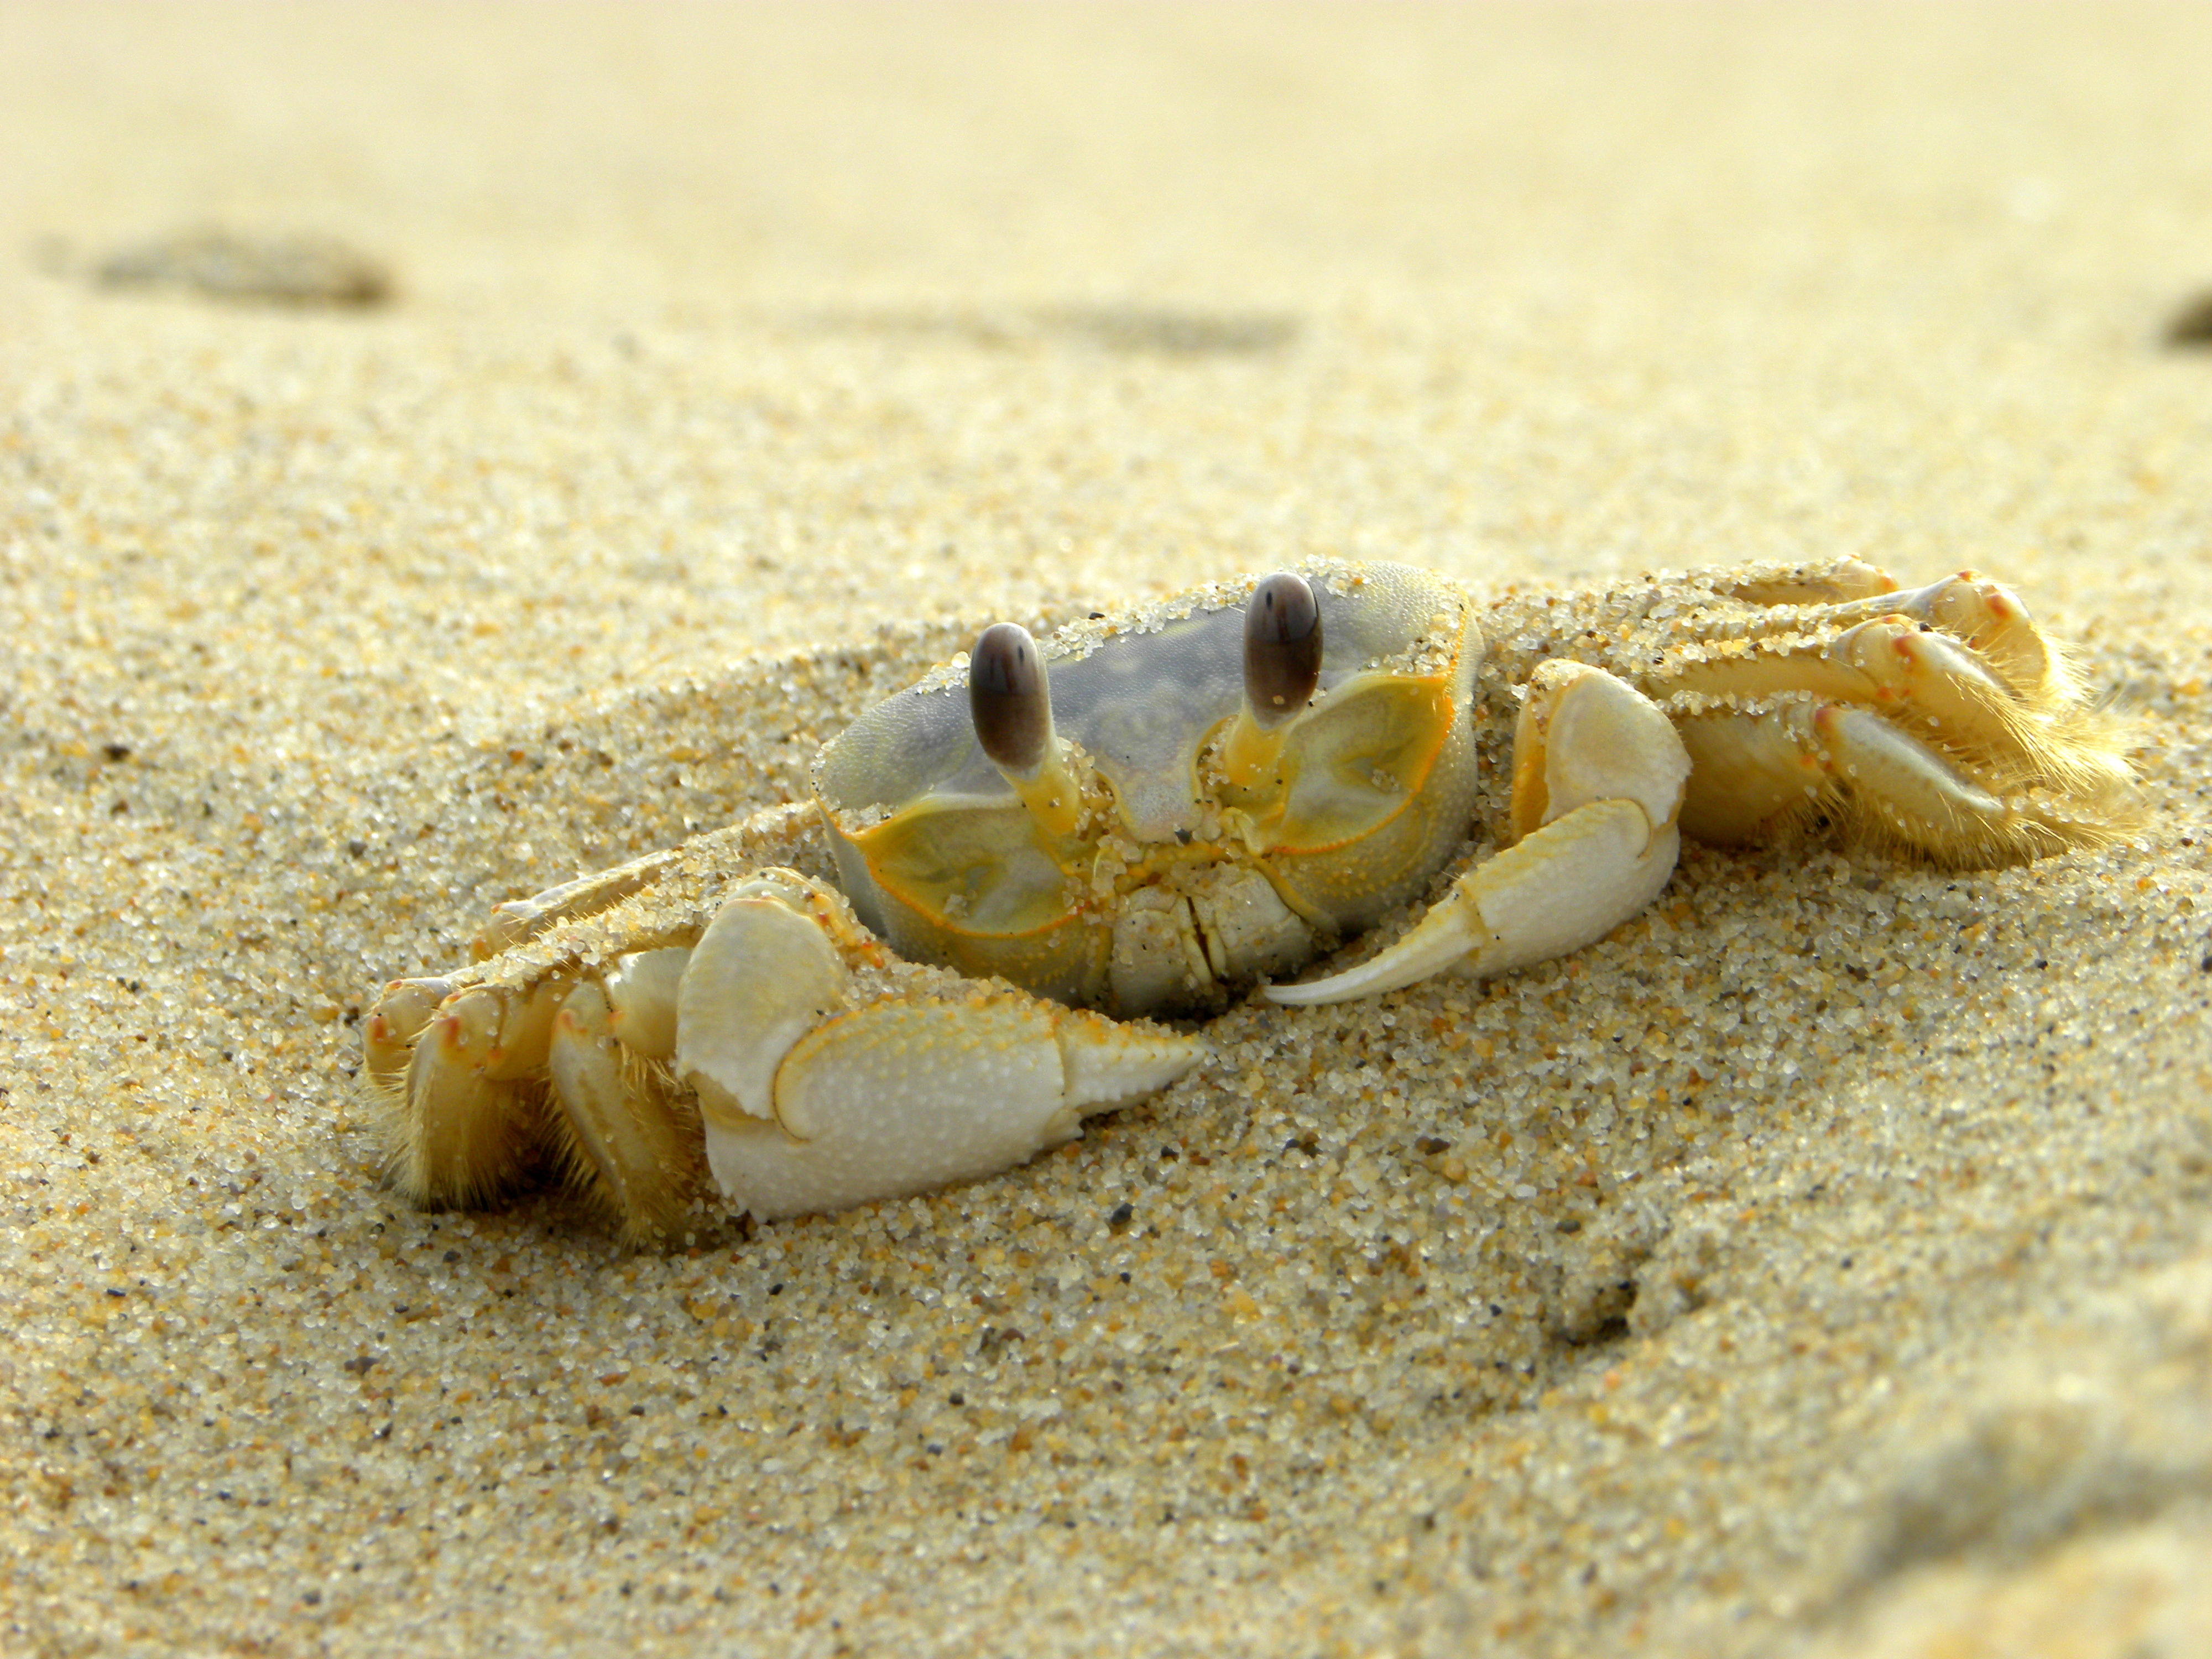 HQ Ghost Crab Wallpapers | File 5325.63Kb